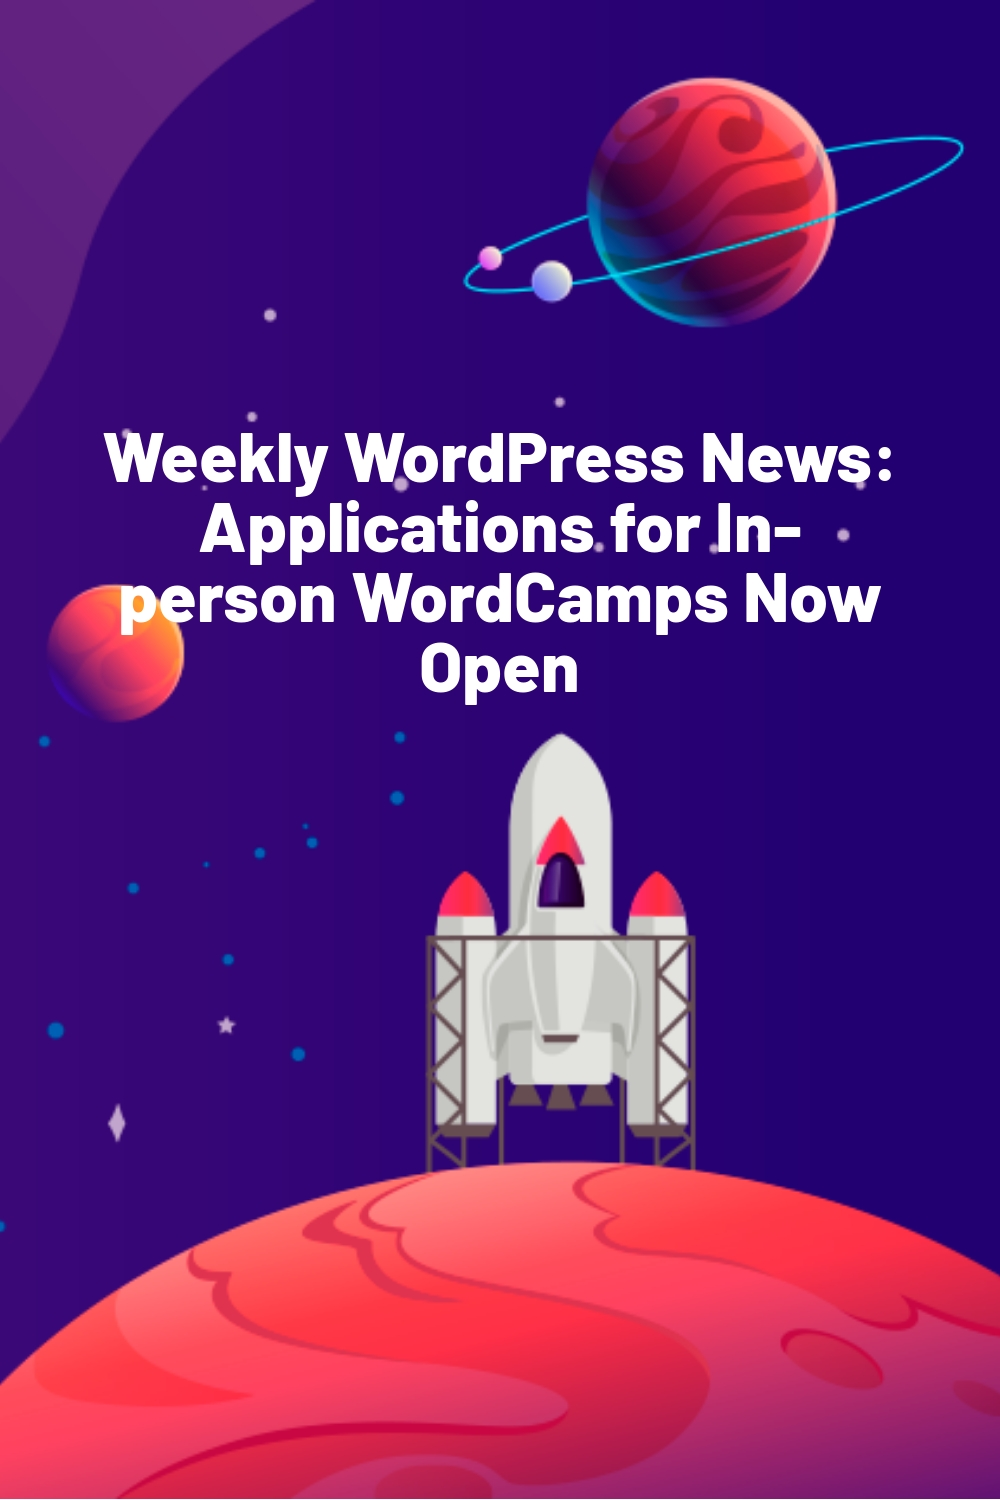 Weekly WordPress News: Applications for In-person WordCamps Now Open